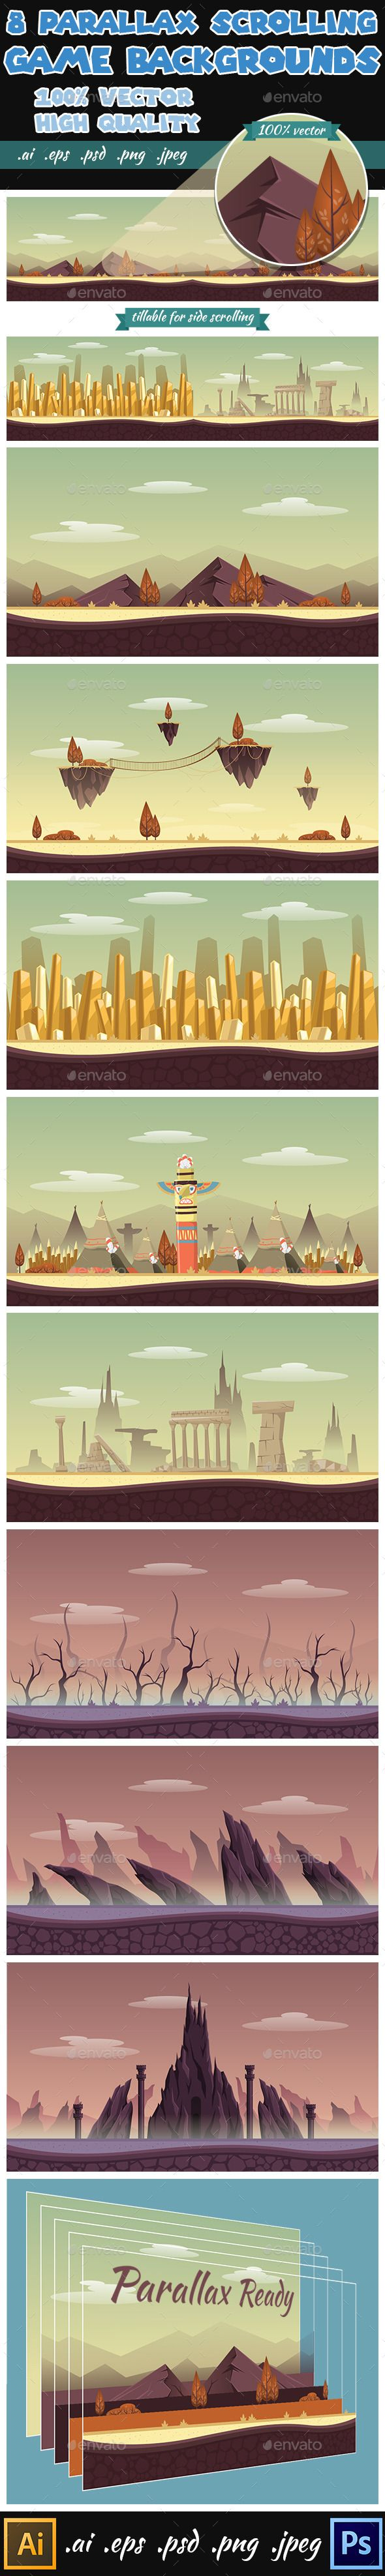 8 Game Backgrounds - Parallex Side Scrolling Download here: https://graphicriver.net/item/8-game-backgrounds-parallex-side-scrolling/10901974?ref=KlitVogli